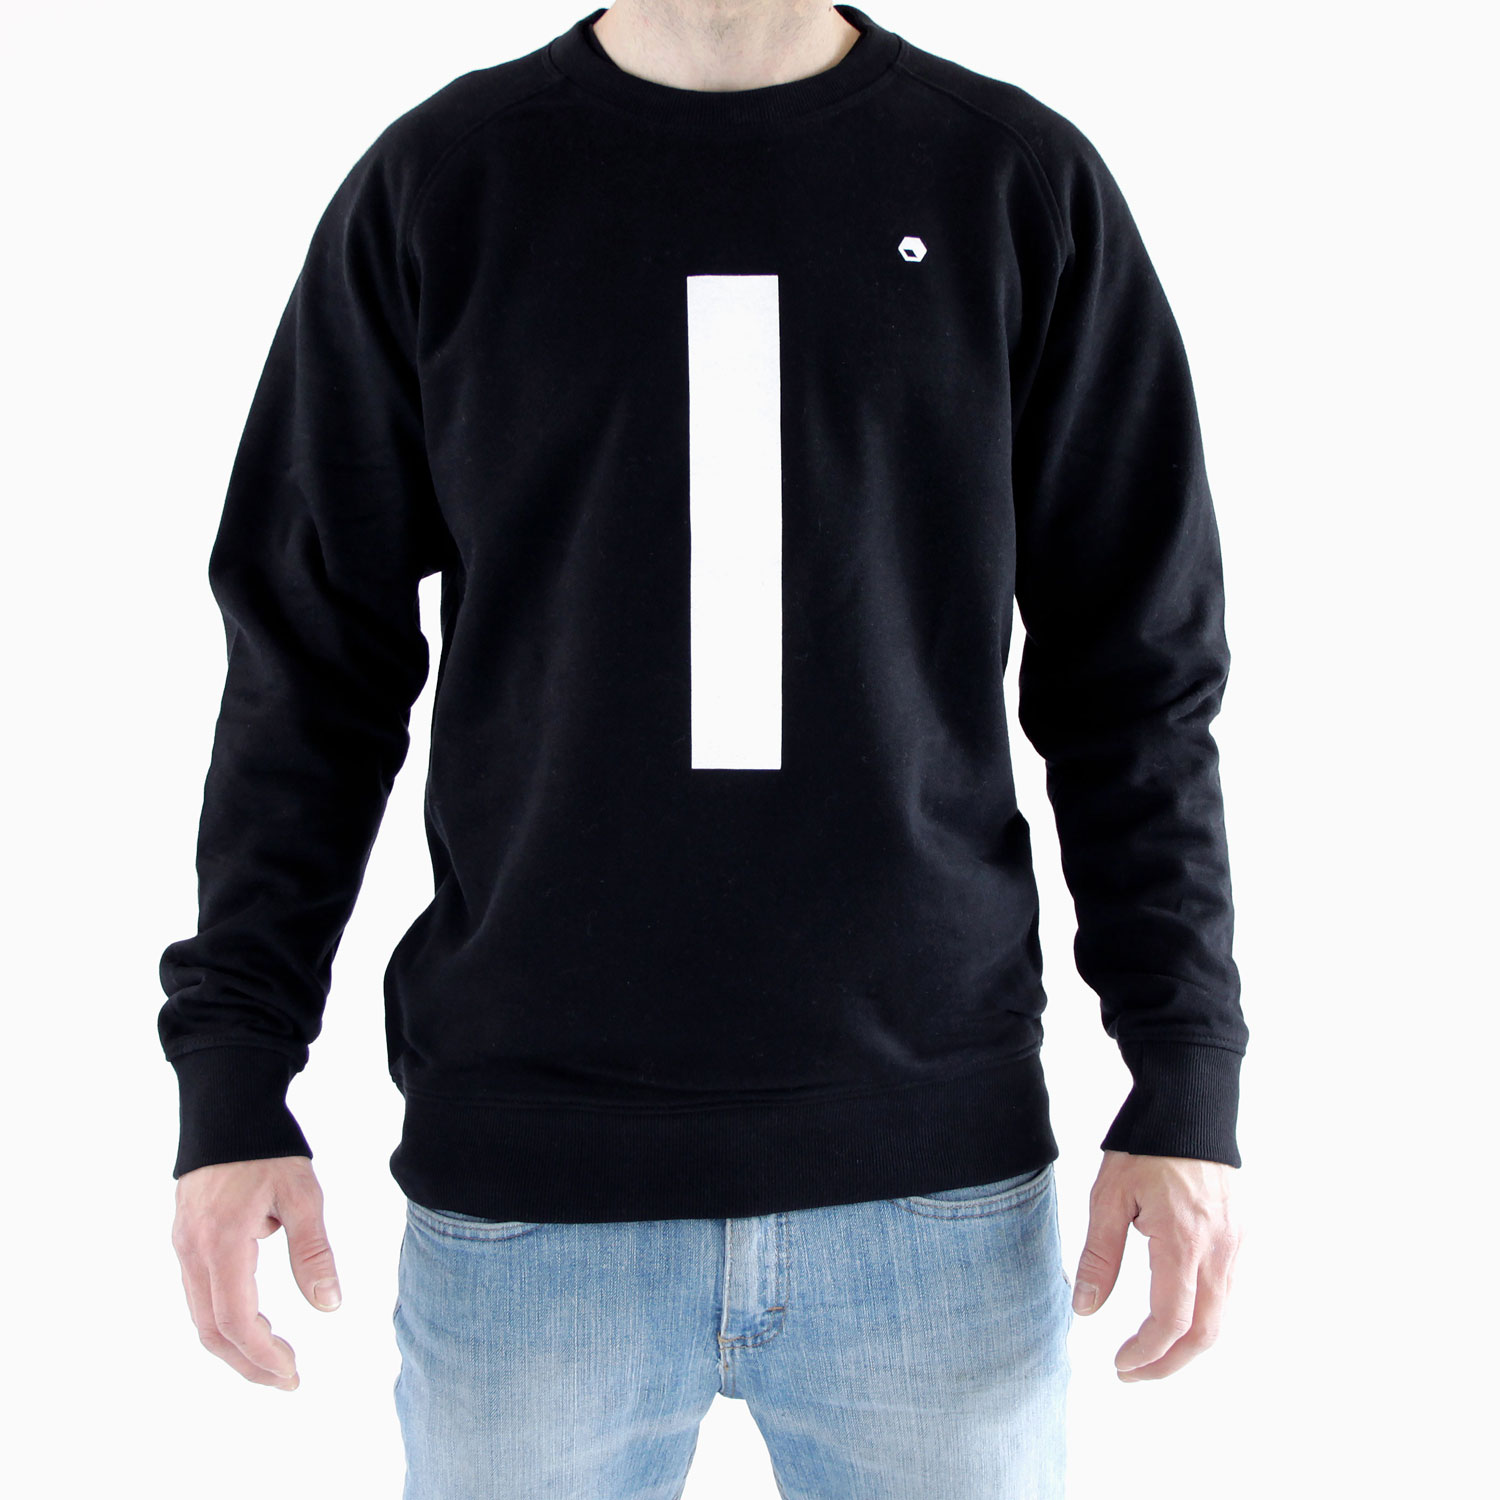 Flathold-apparel-sweat-l-black